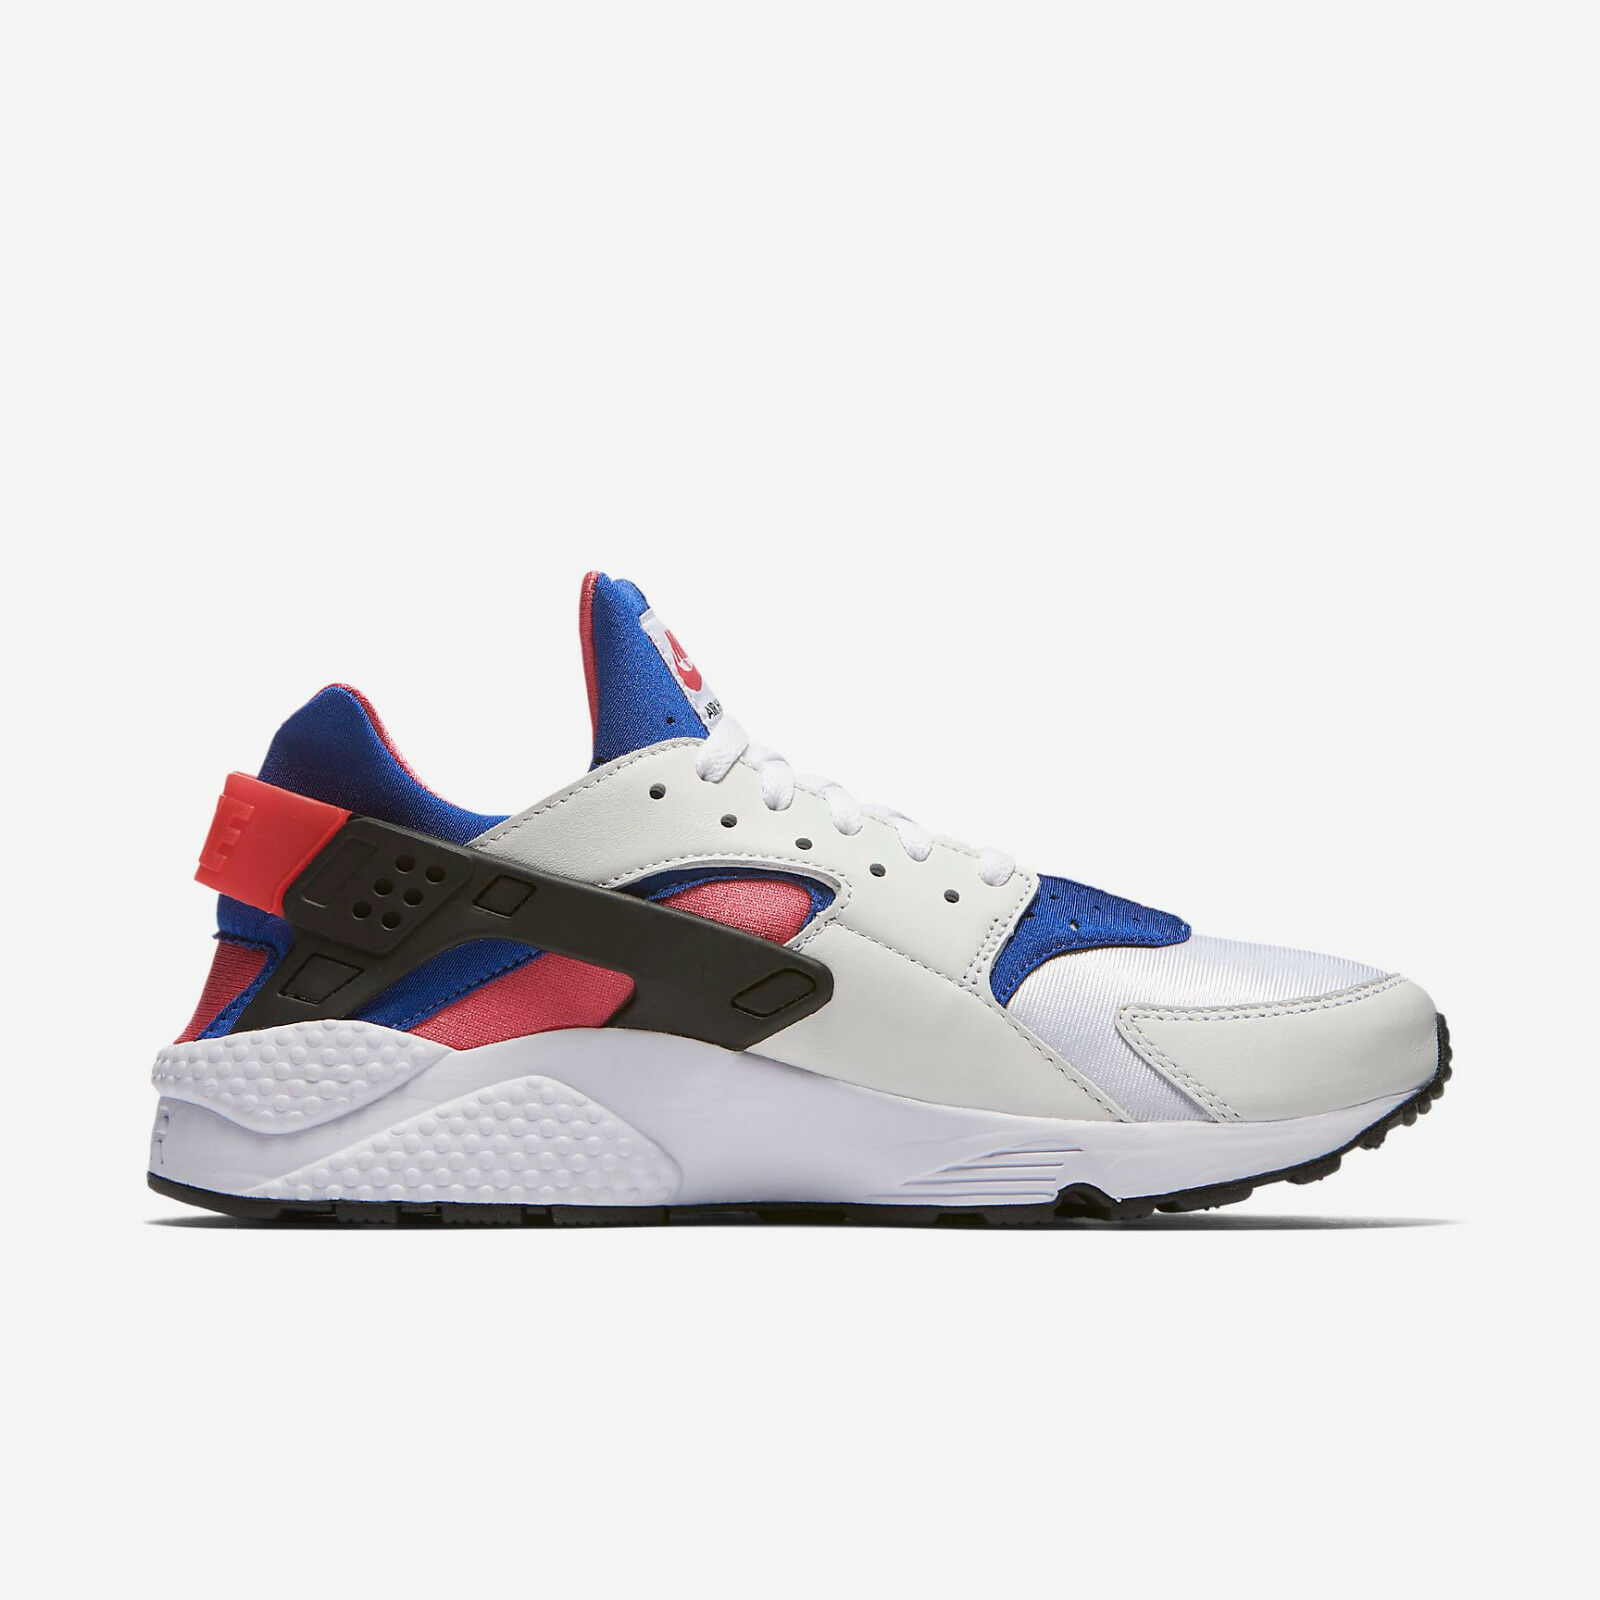 NIB NIKE Hommes 9 AIR HUARACHE RUN '91 QS MSRP AH8049 100 LIFESTYLE Chaussures MSRP QS  130 807538